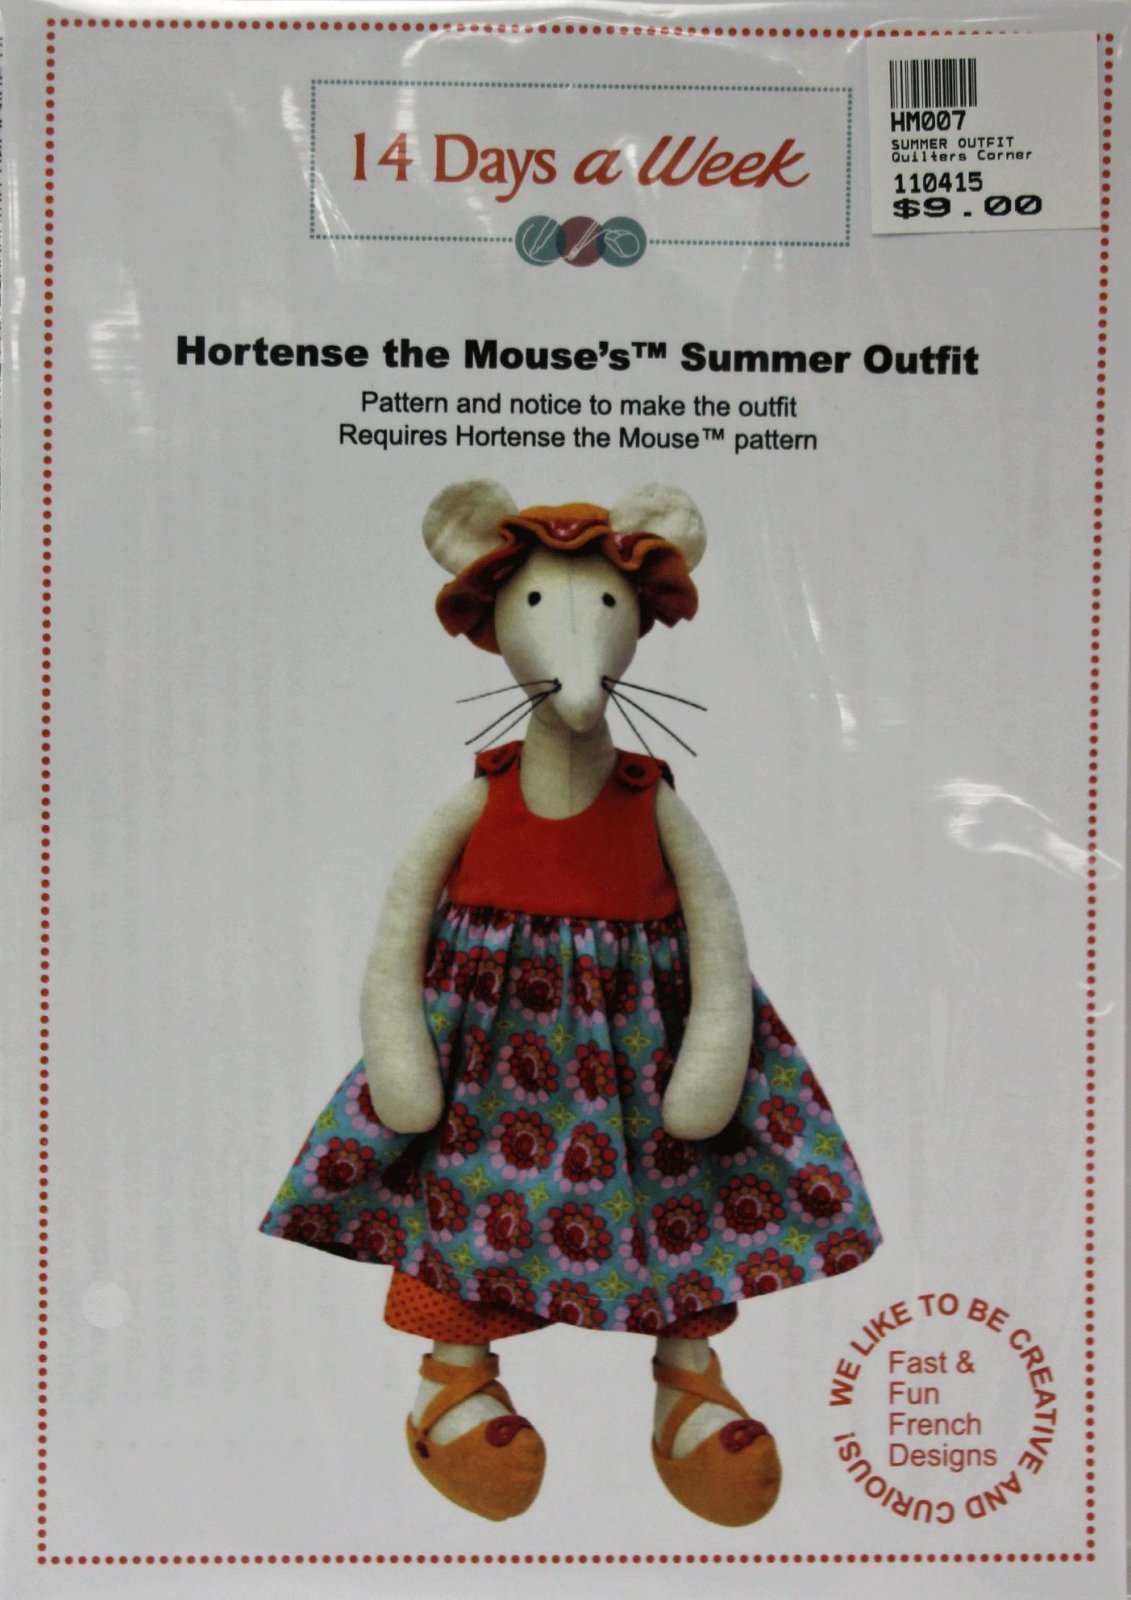 Hortense the Mouse's Summer Outfit Pattern